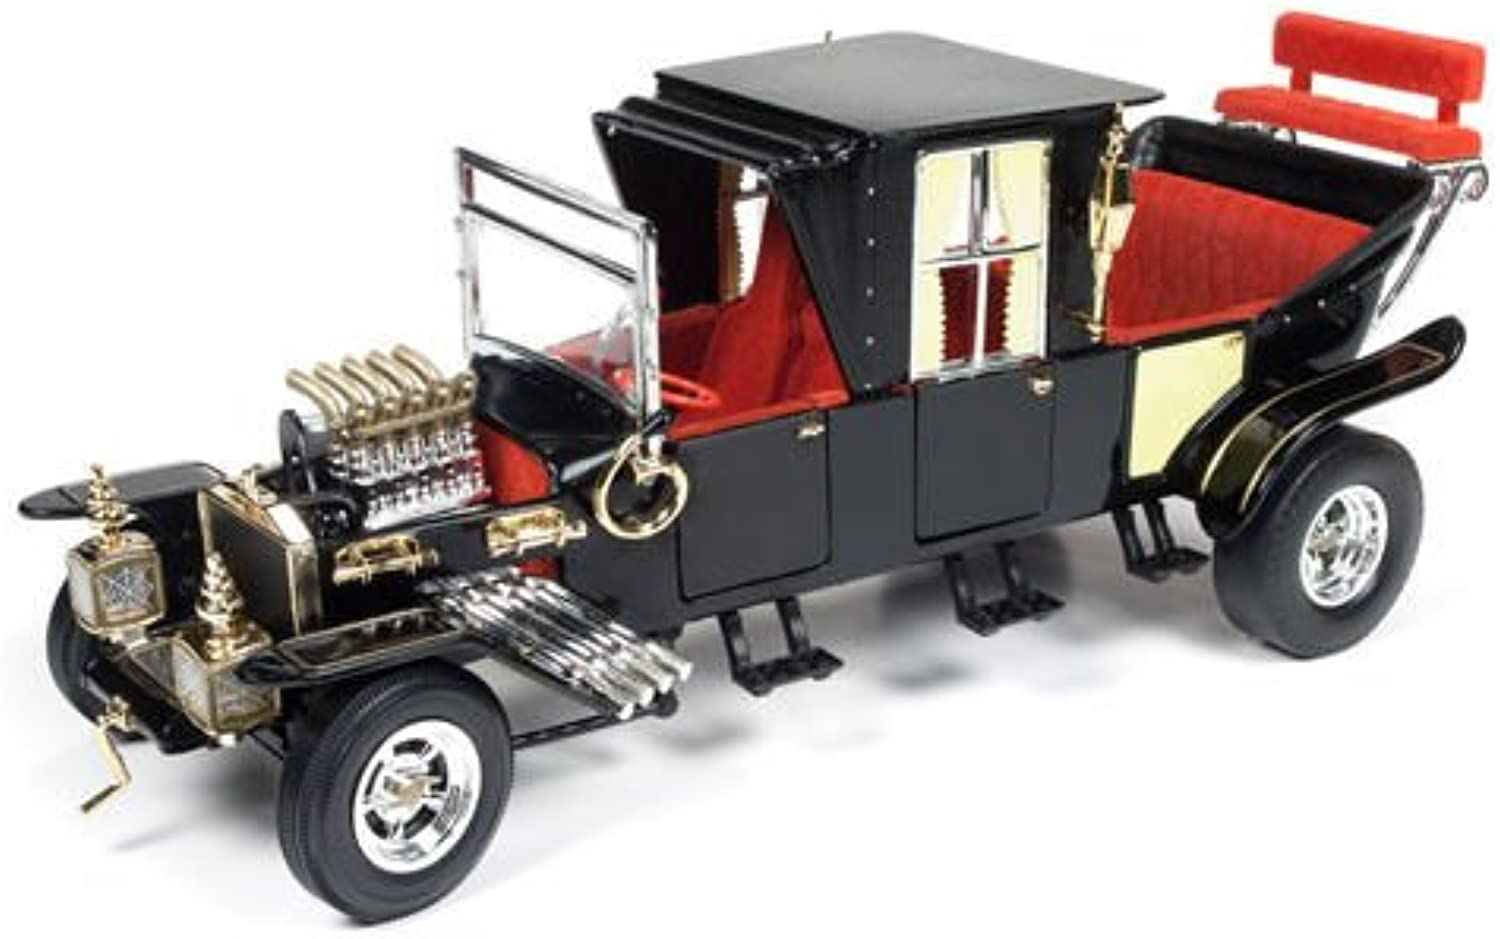 Auto World AW233 1 18 Barris Koach-The Munsters